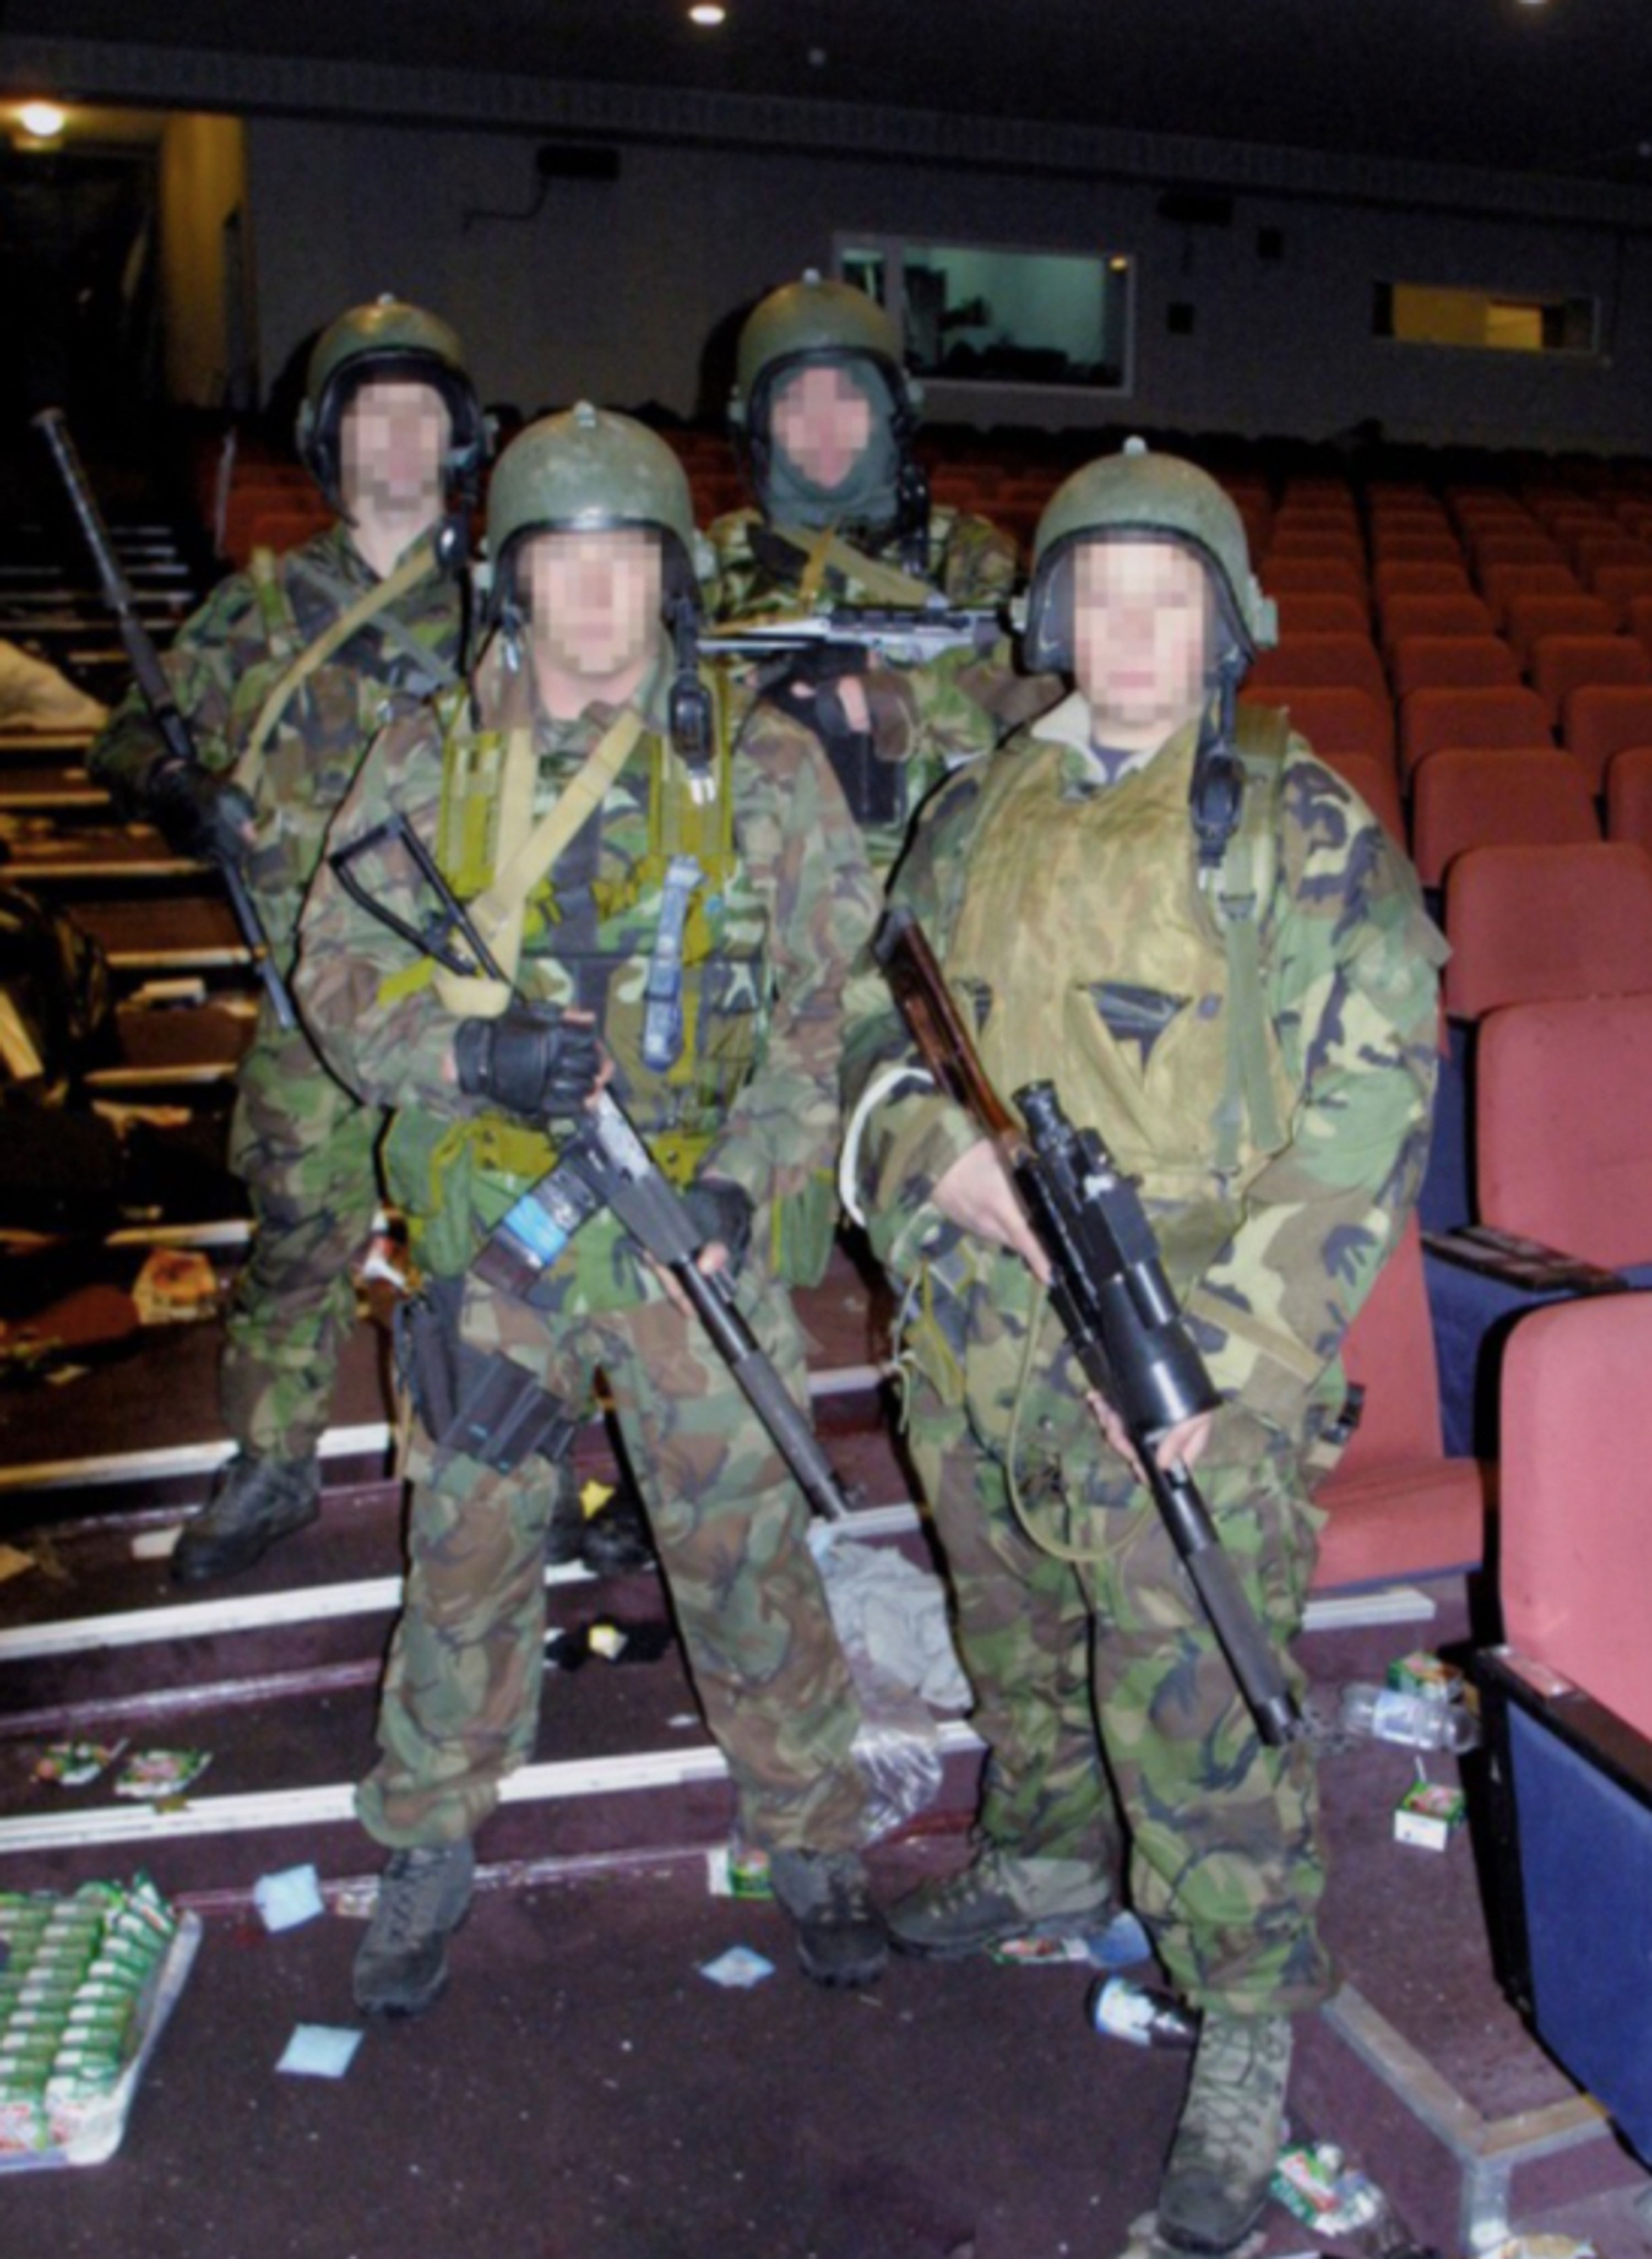 Members of the Spetsnaz in the theatre after the siege.